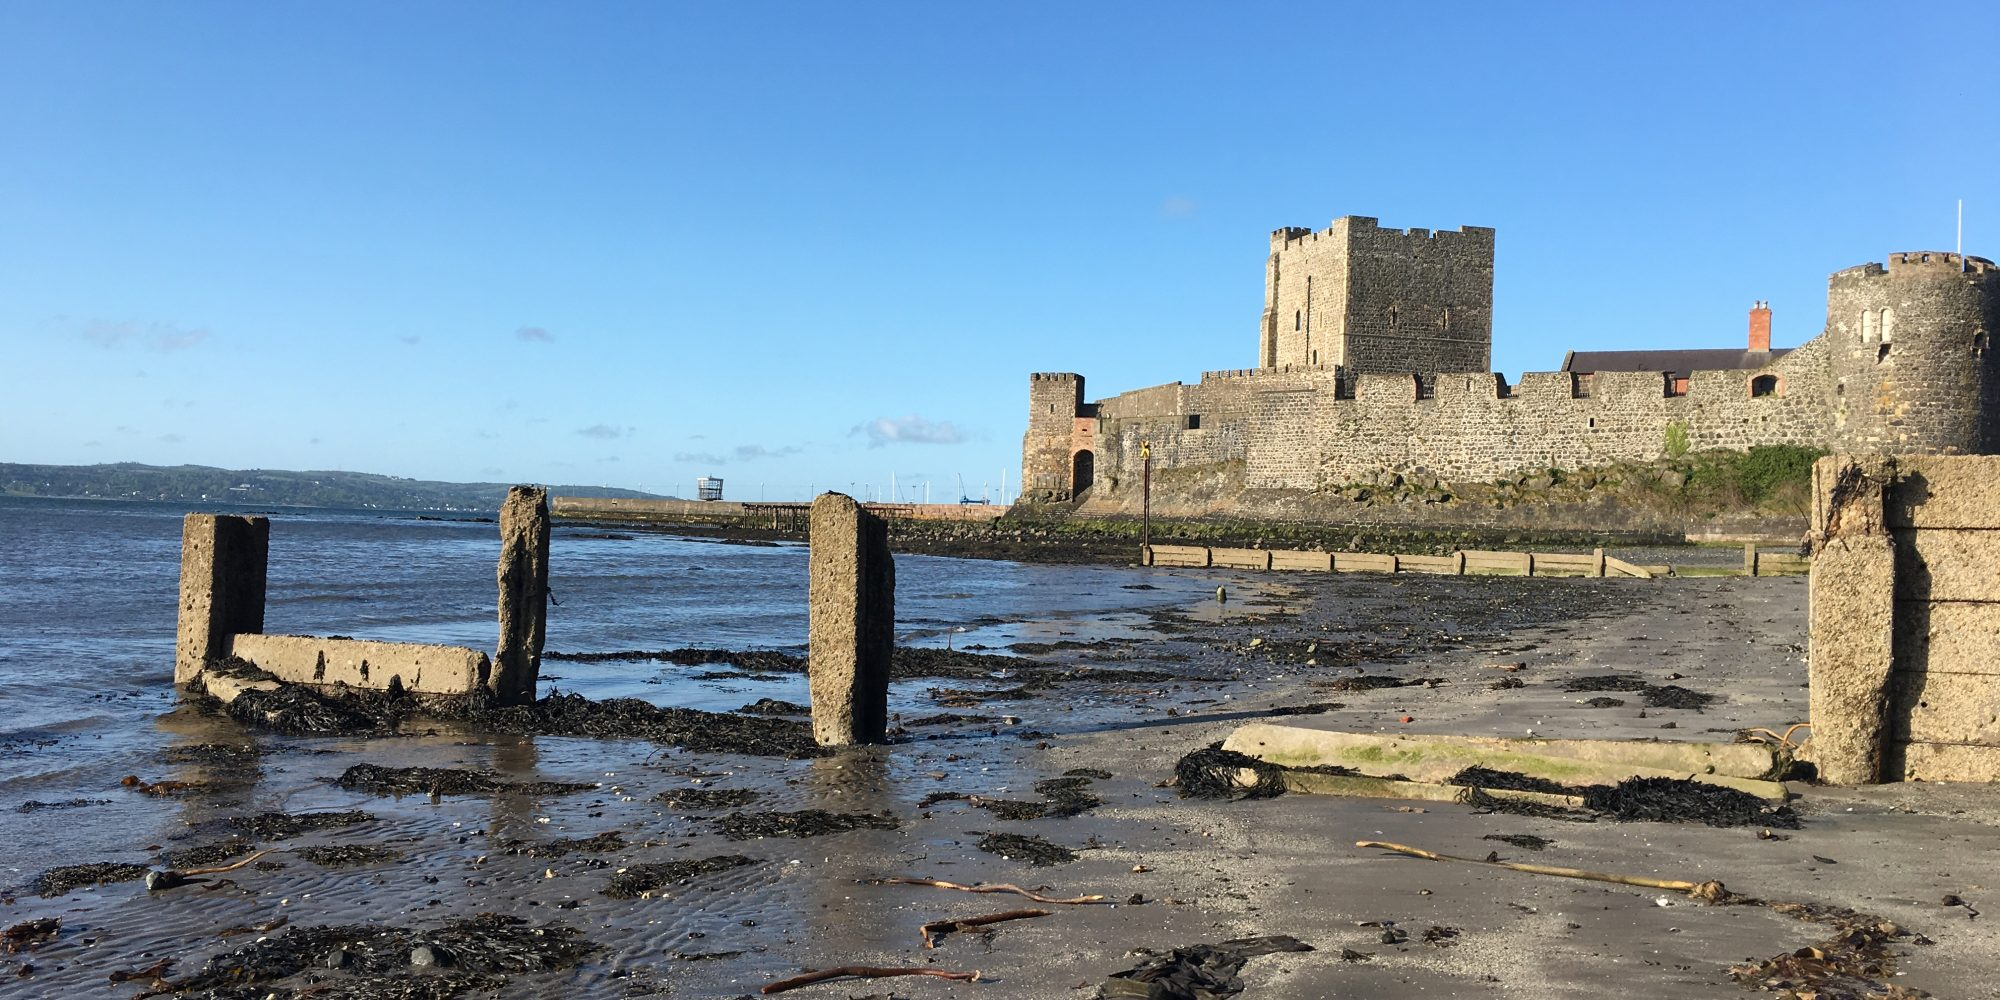 Walled castle sits on a beach, tide partly out, seaweed visible on sand